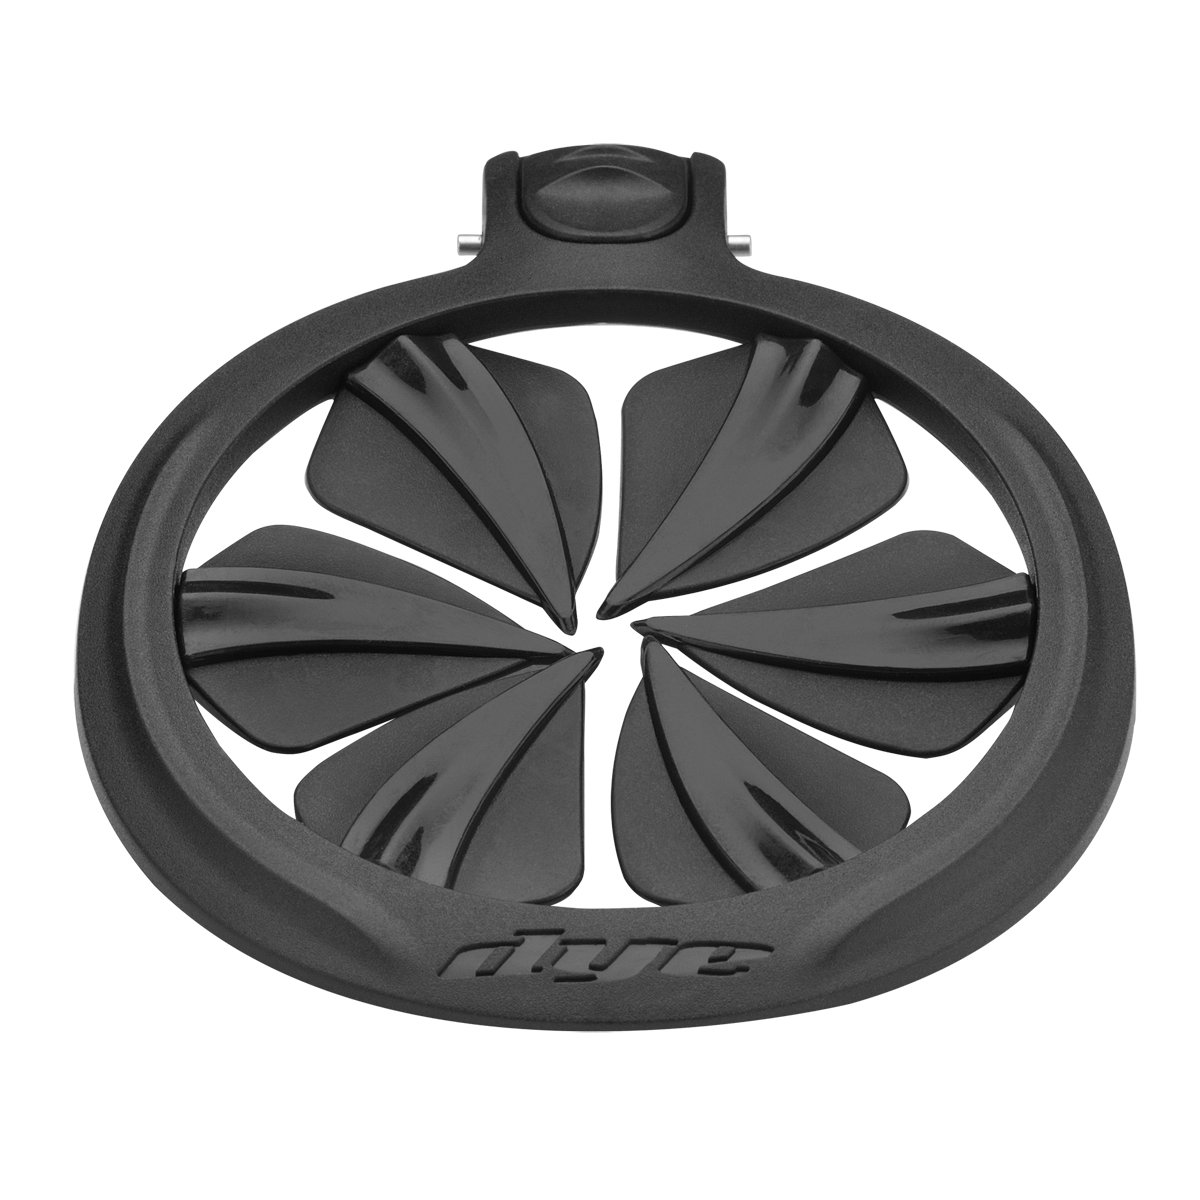 Dye Rotor R2 Quick Feed - Black by Dye